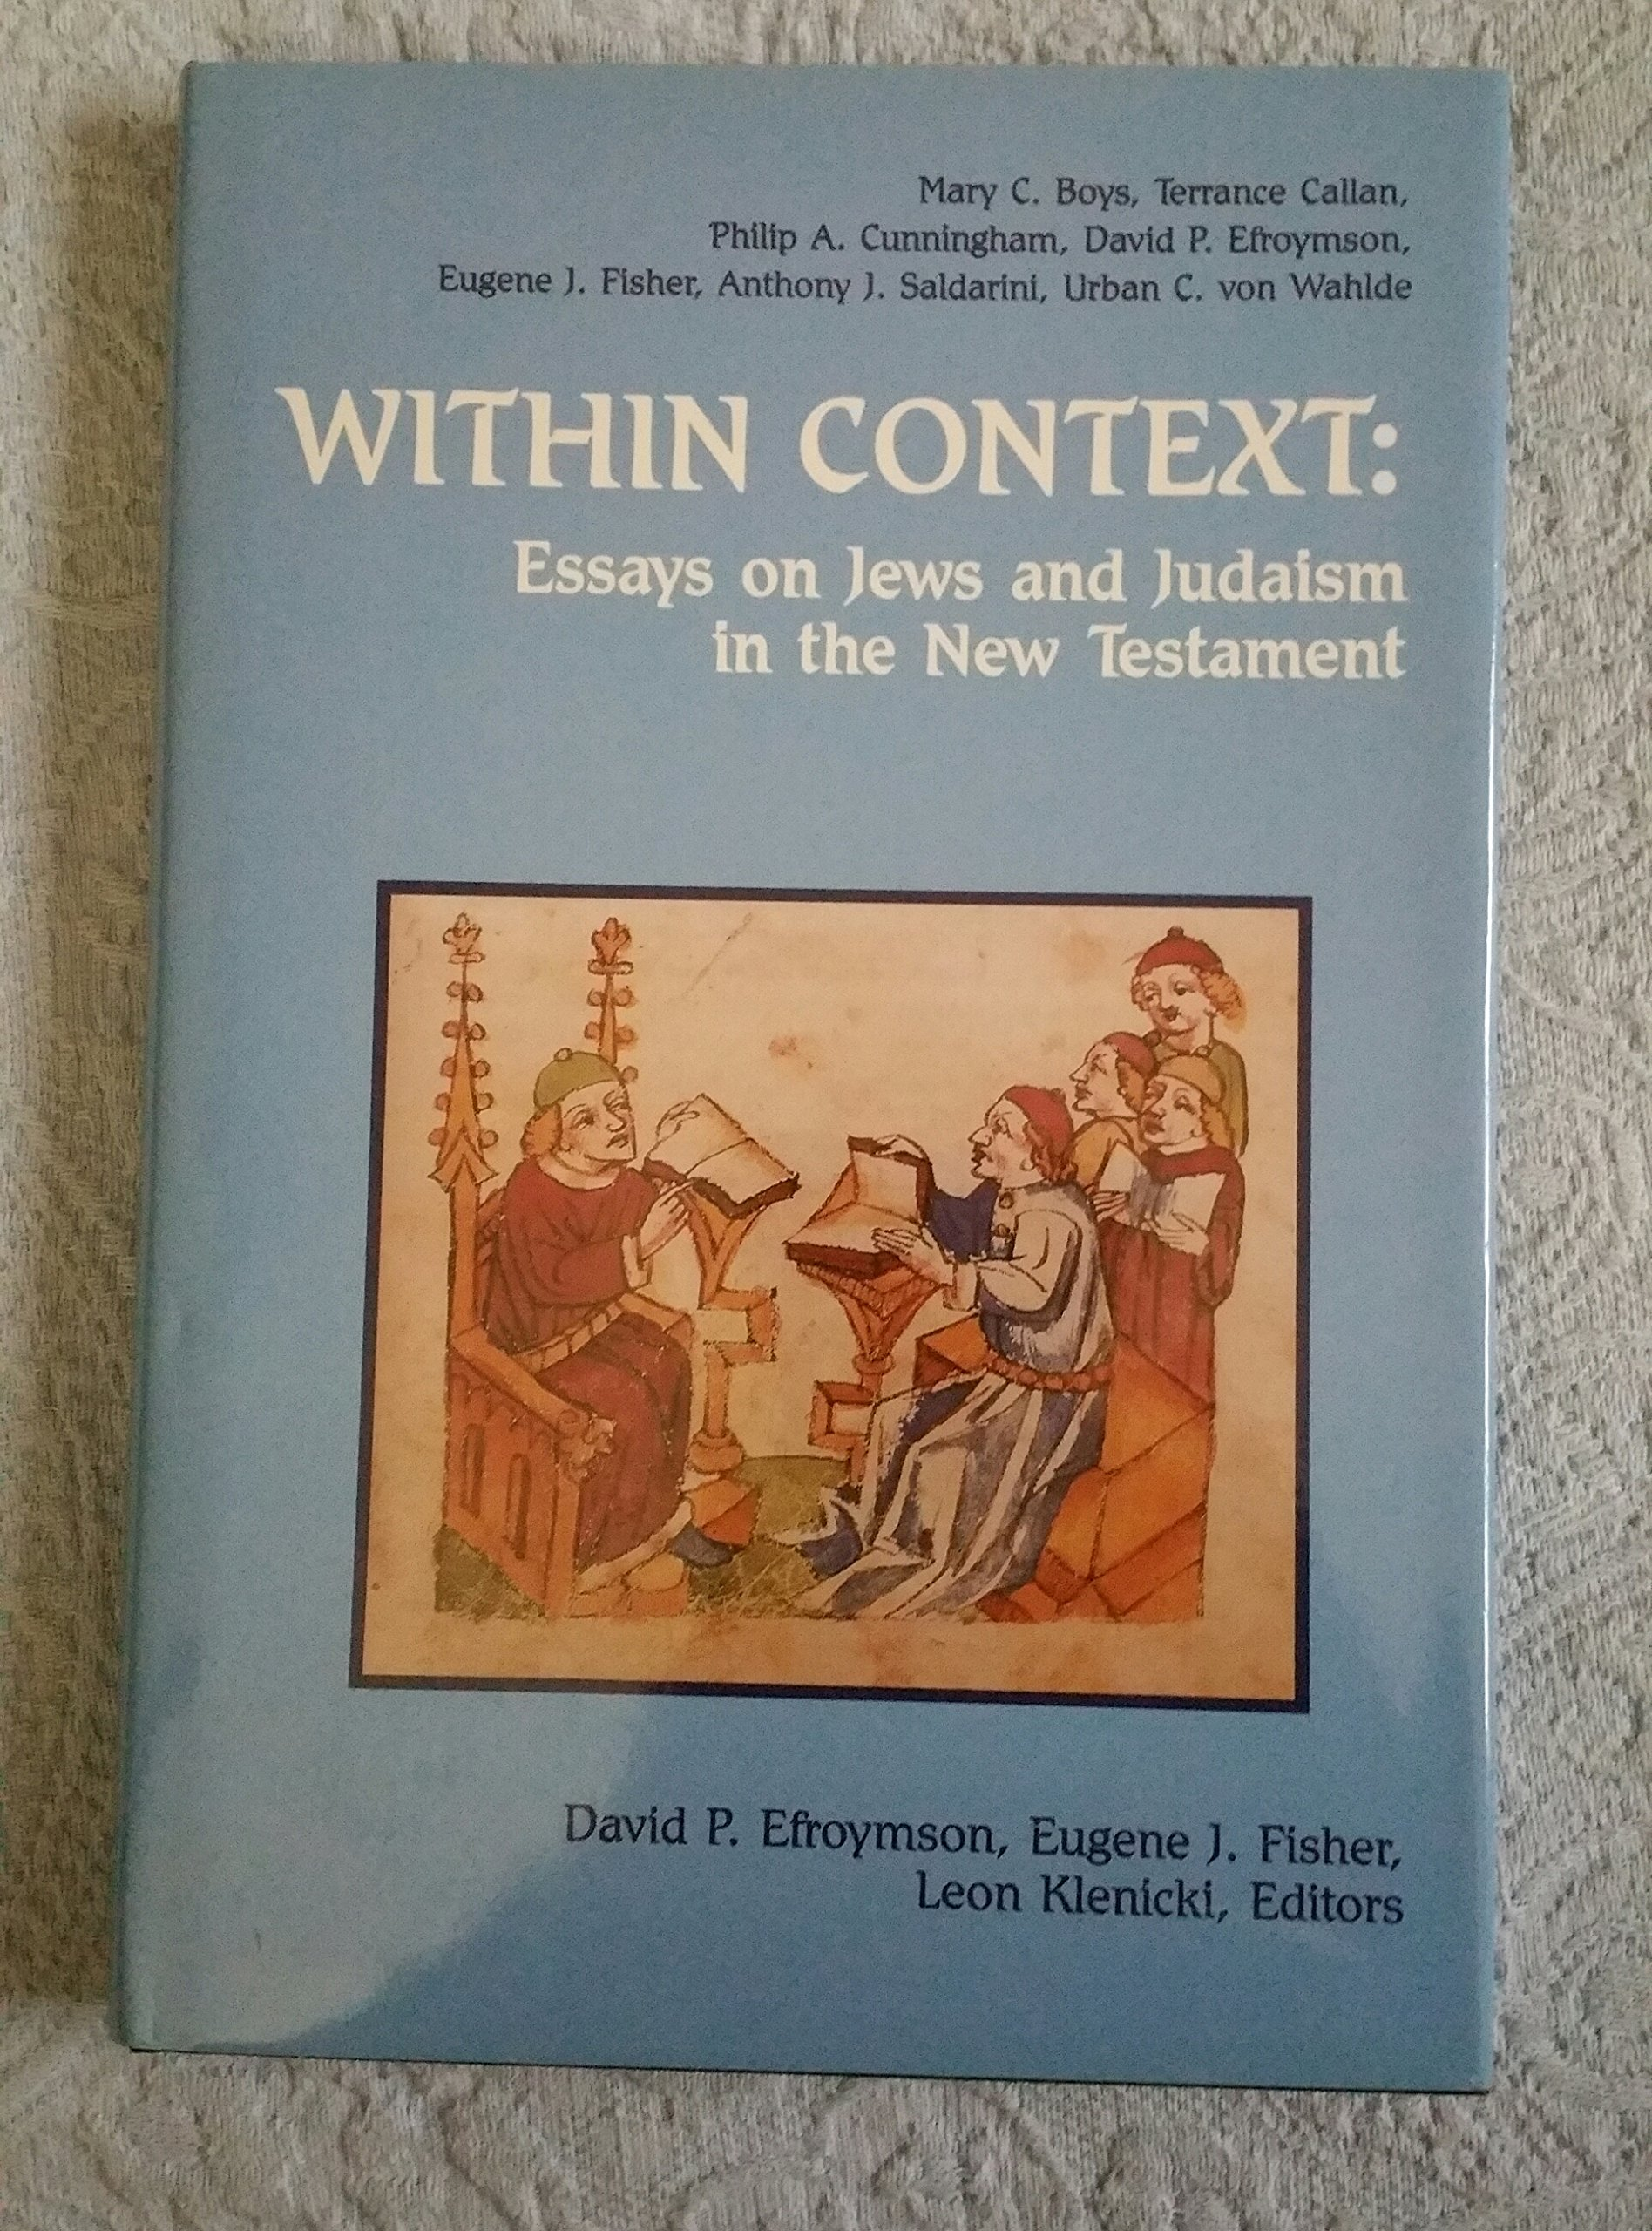 in context essays on jews and judaism in the new testament in context essays on jews and judaism in the new testament michael glazier books mary c boys anthony j saldarini p a cunningham